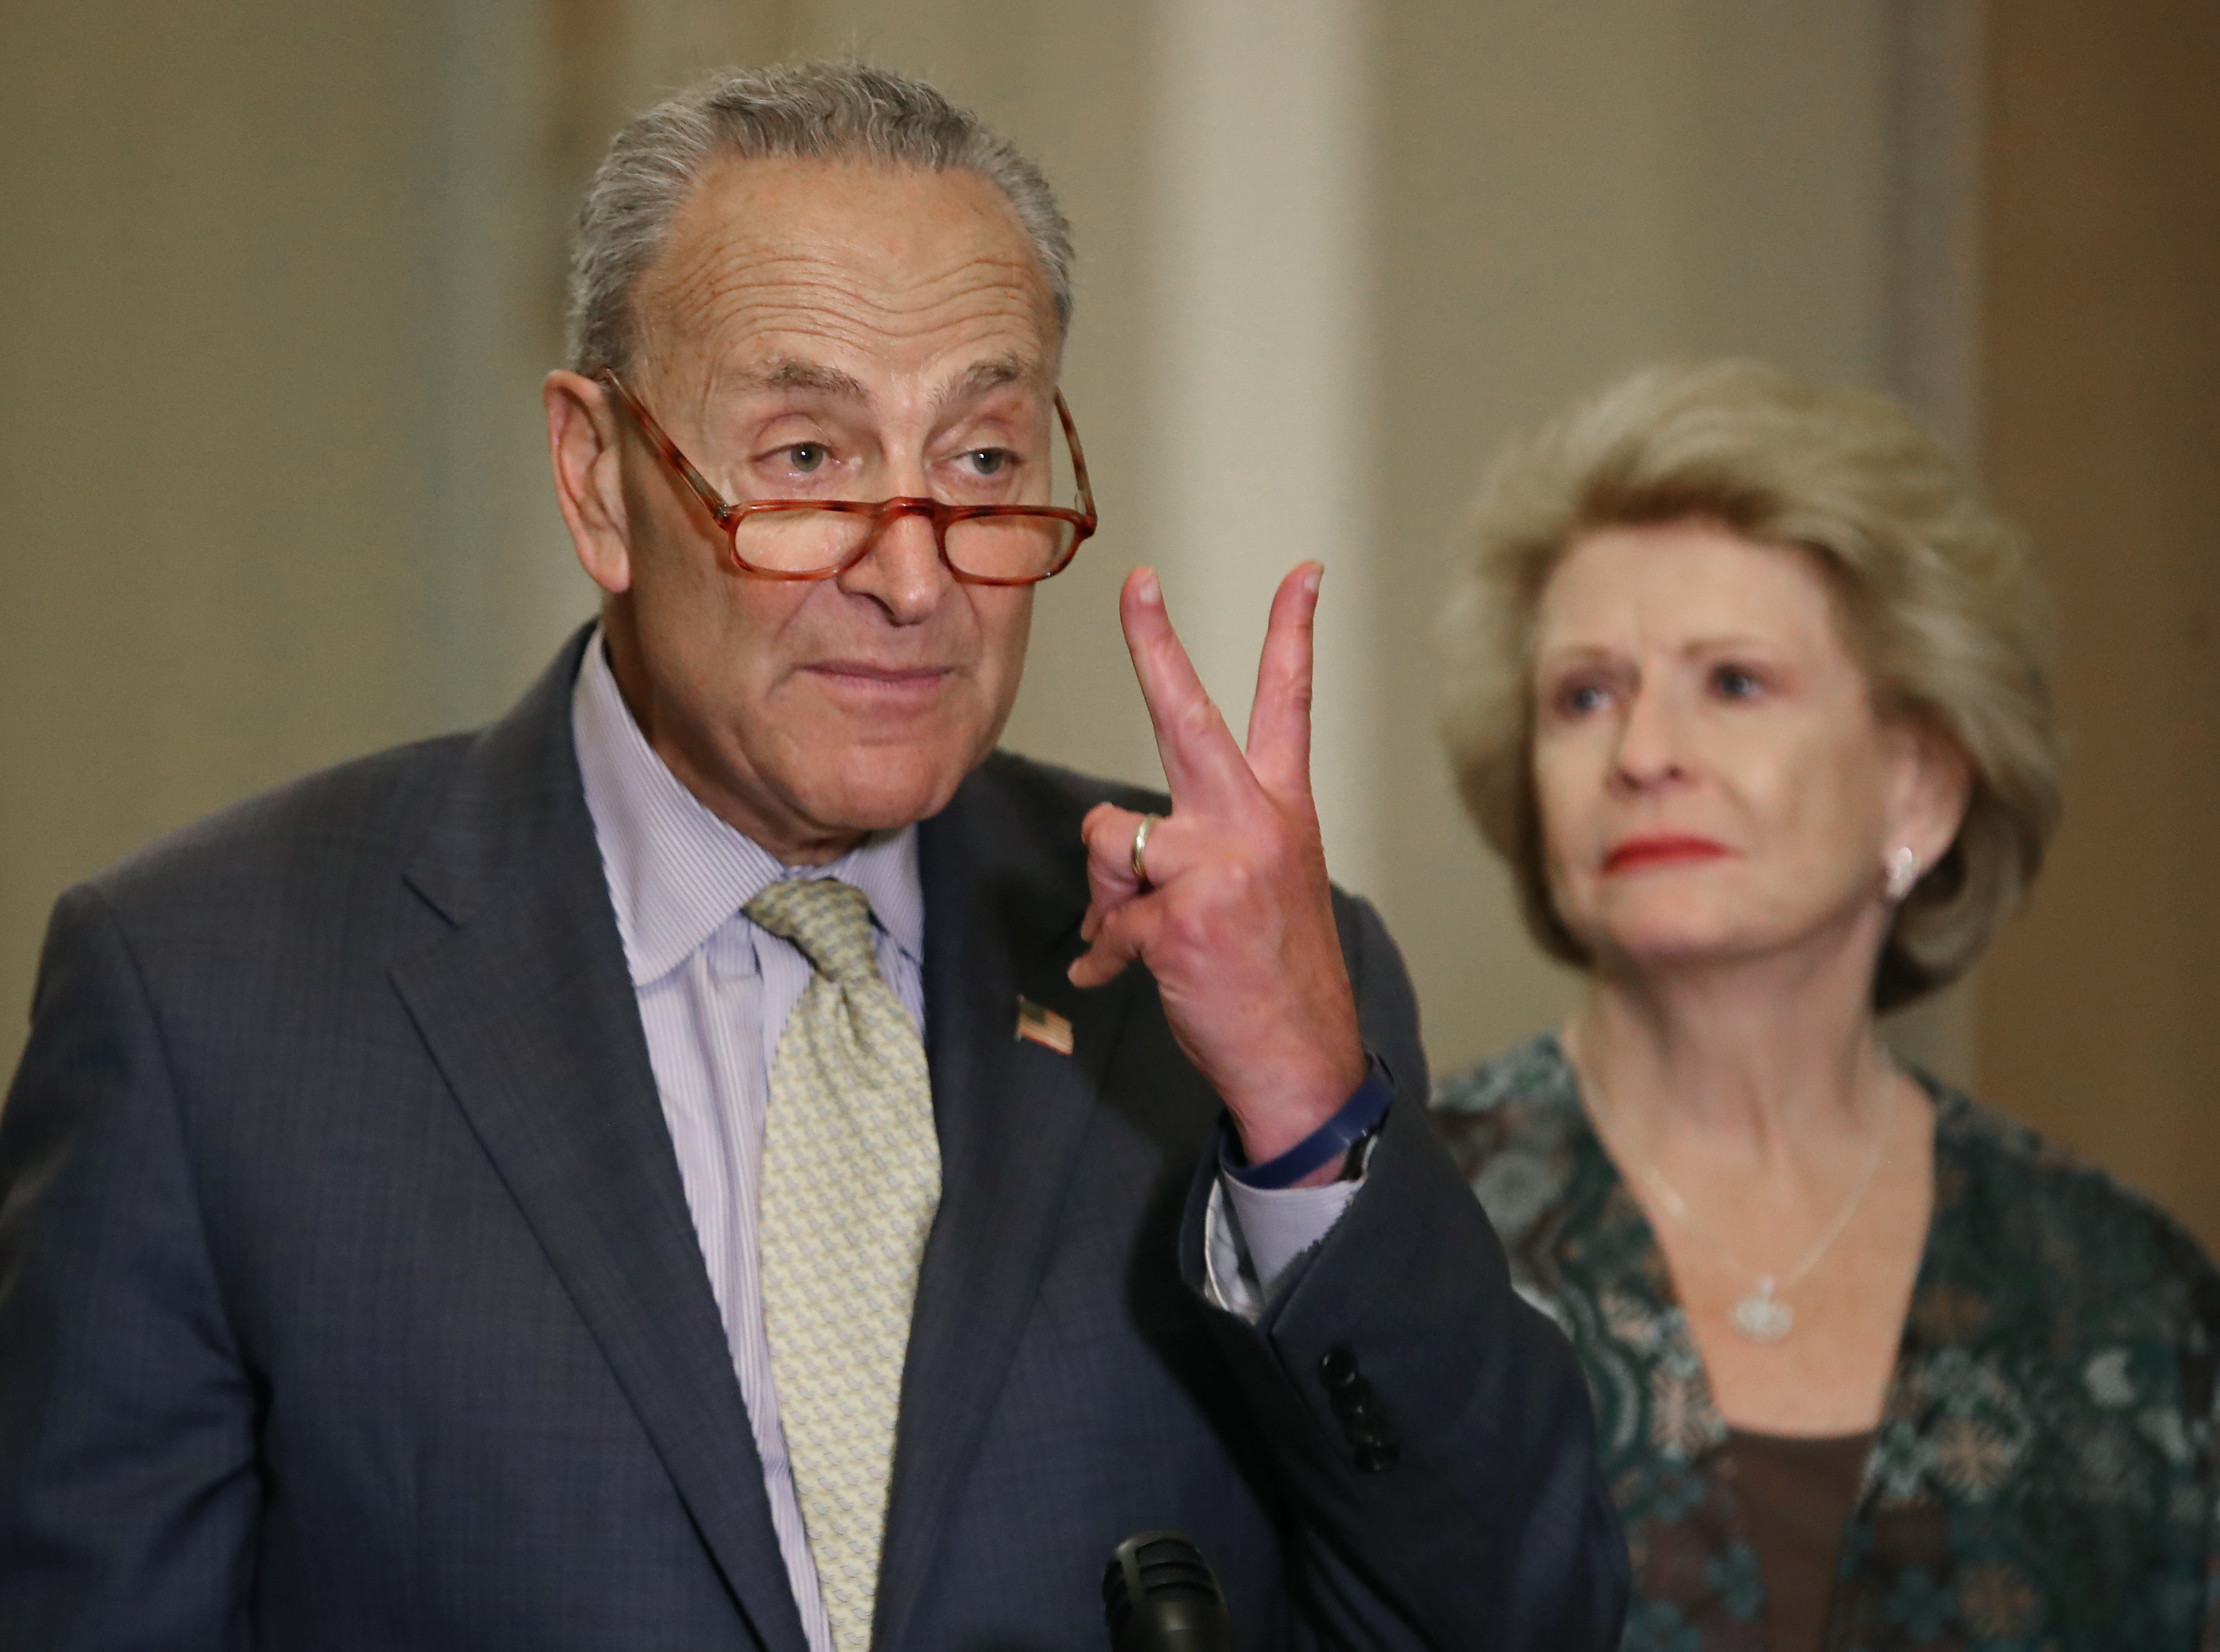 WASHINGTON, DC - SEPTEMBER 17: Senate Minority Leader Charles Schumer (D-NY) while flanked by Sen. Debbie Stabenow (D-MI) after attending the Democratic weekly policy luncheon on Capitol Hill September 17, 2019 in Washington, DC. Leader Schumer spoke about gun legislation that has stalled in the Senate. (Photo by Mark Wilson/Getty Images)